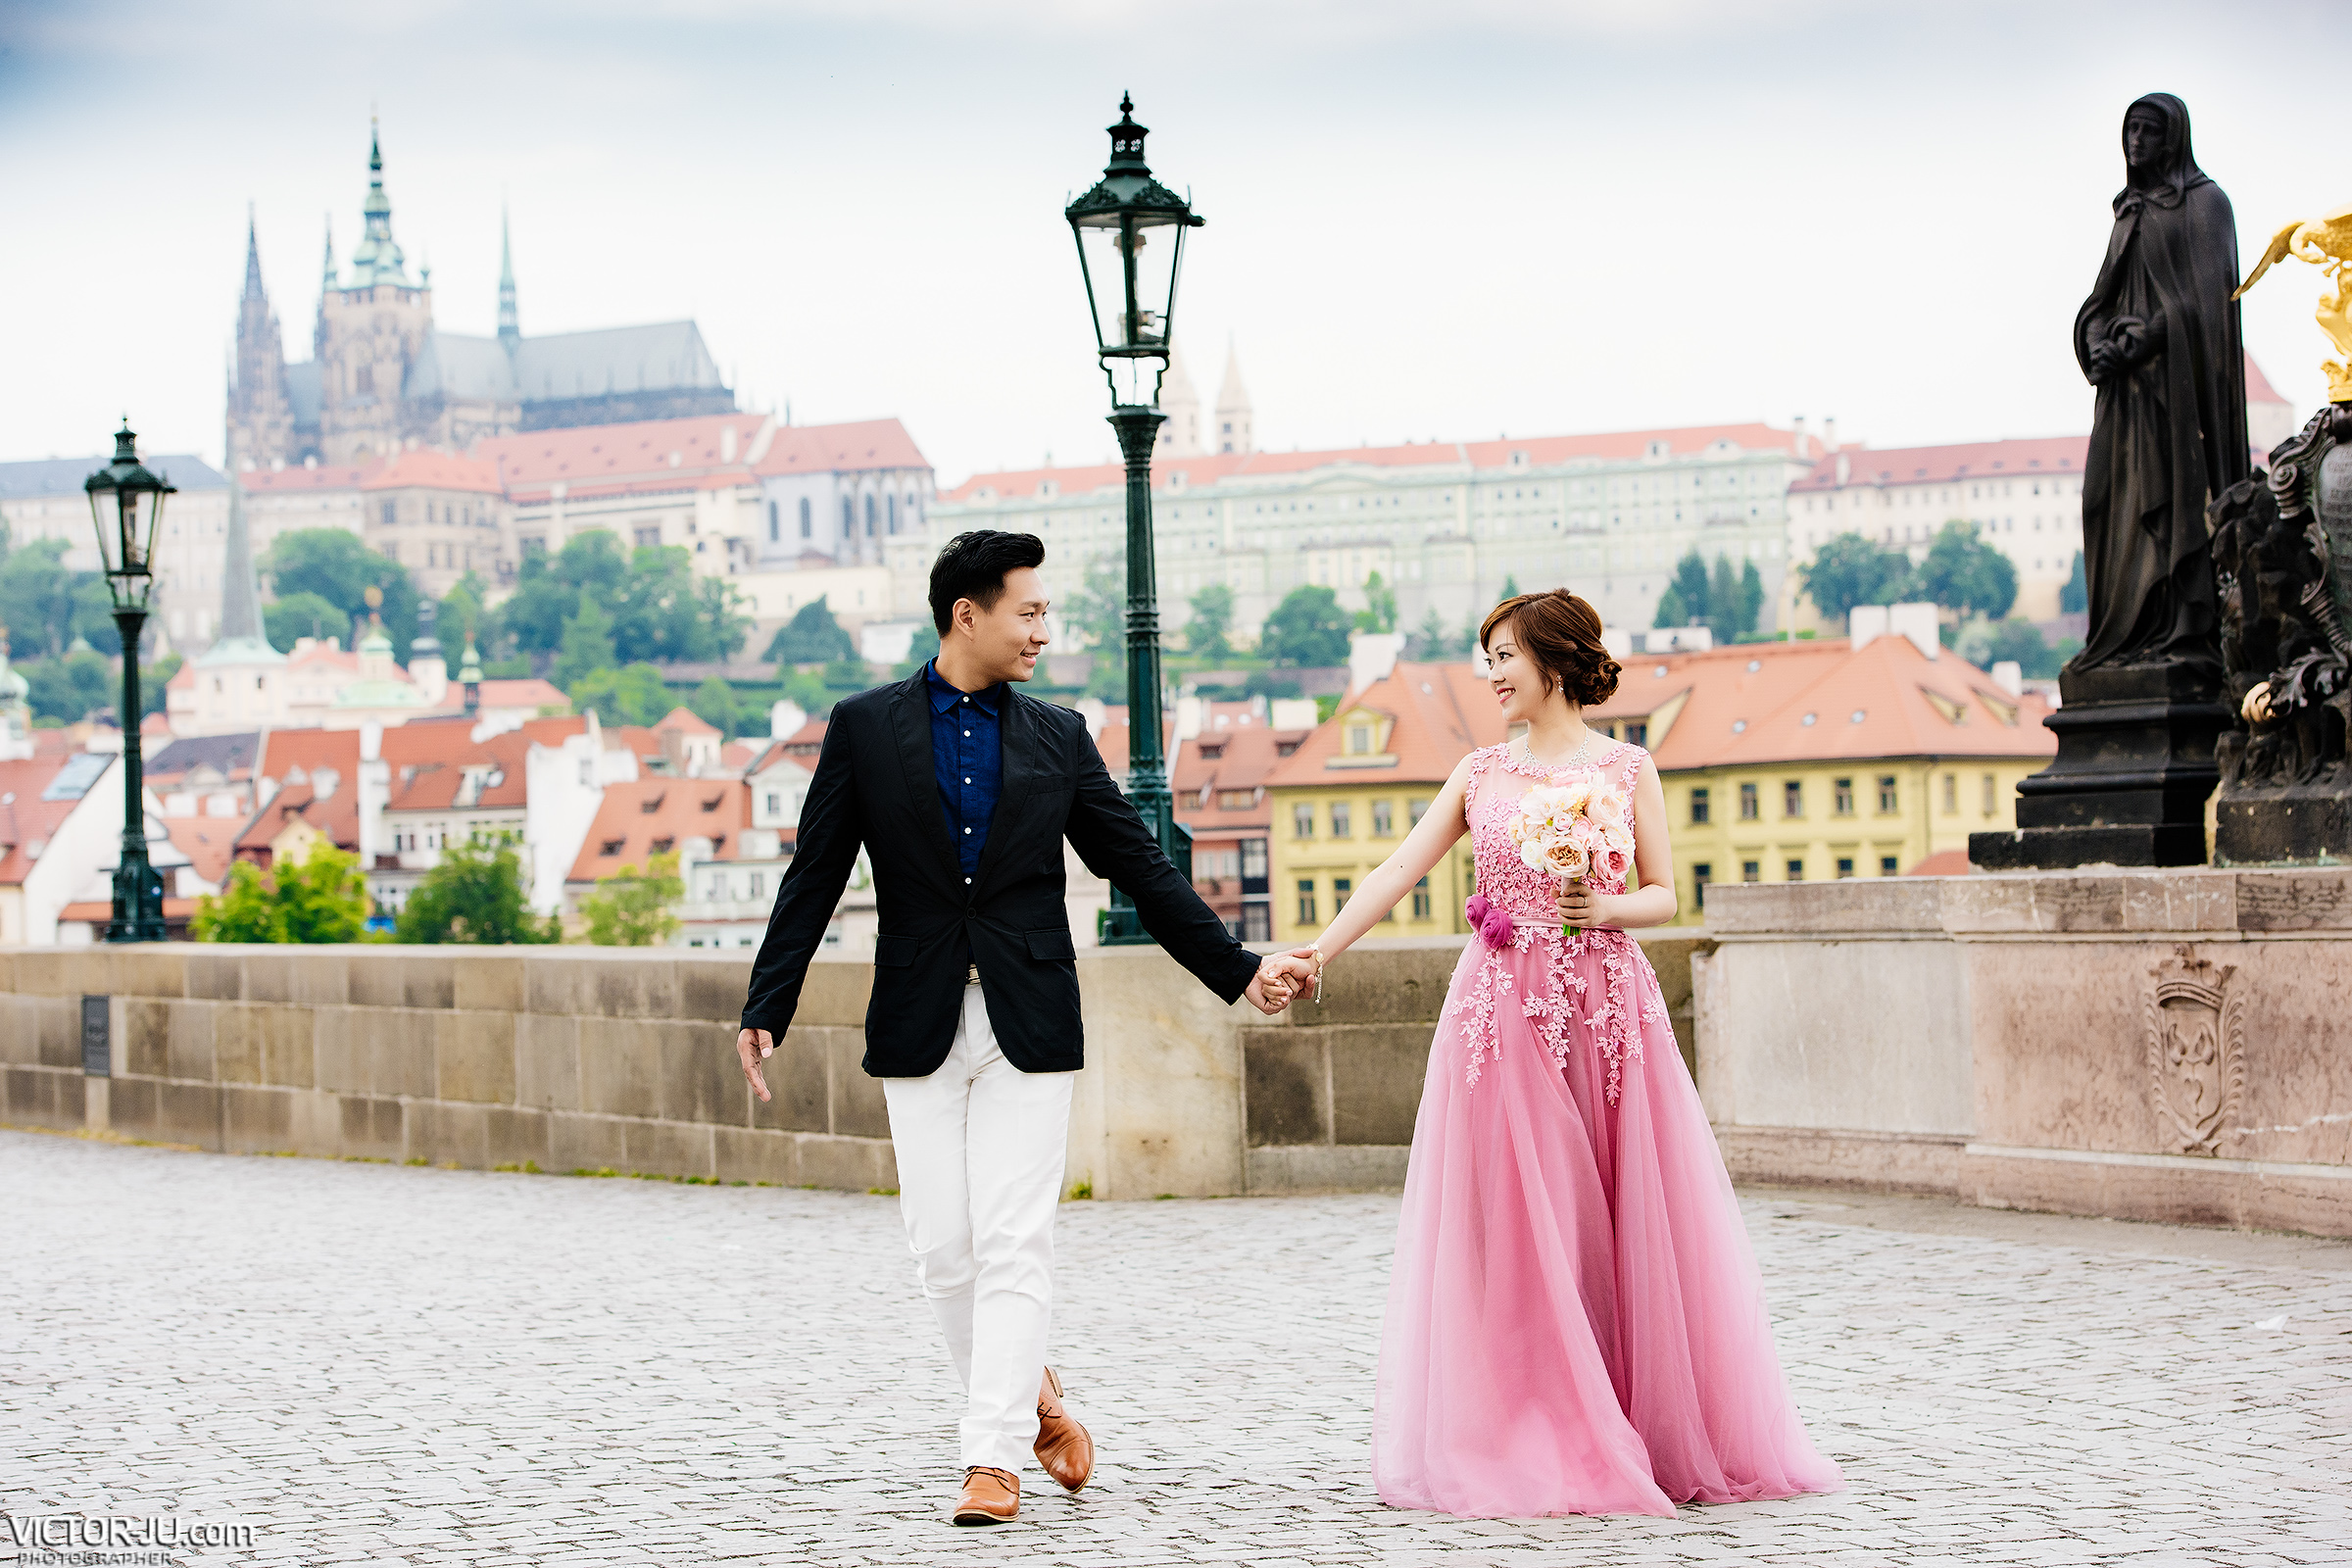 Photo shoot on the Charles Bridge